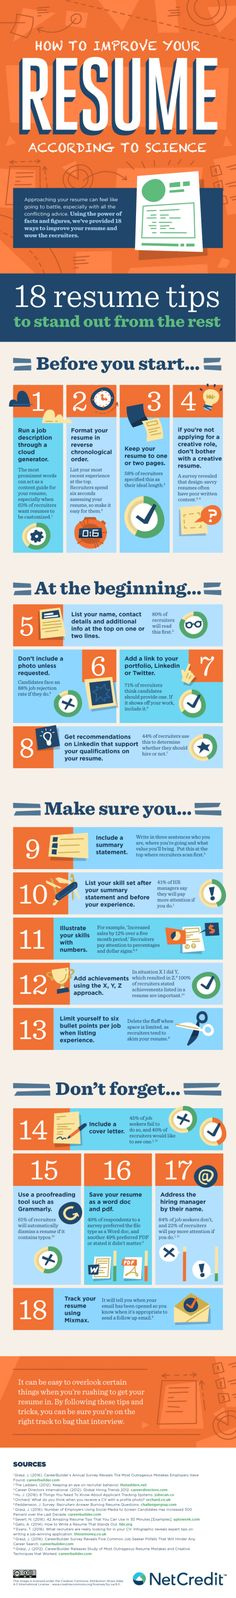 The Five Minute Hacks to Improve Your Resume Infographic presents - how to improve your resume